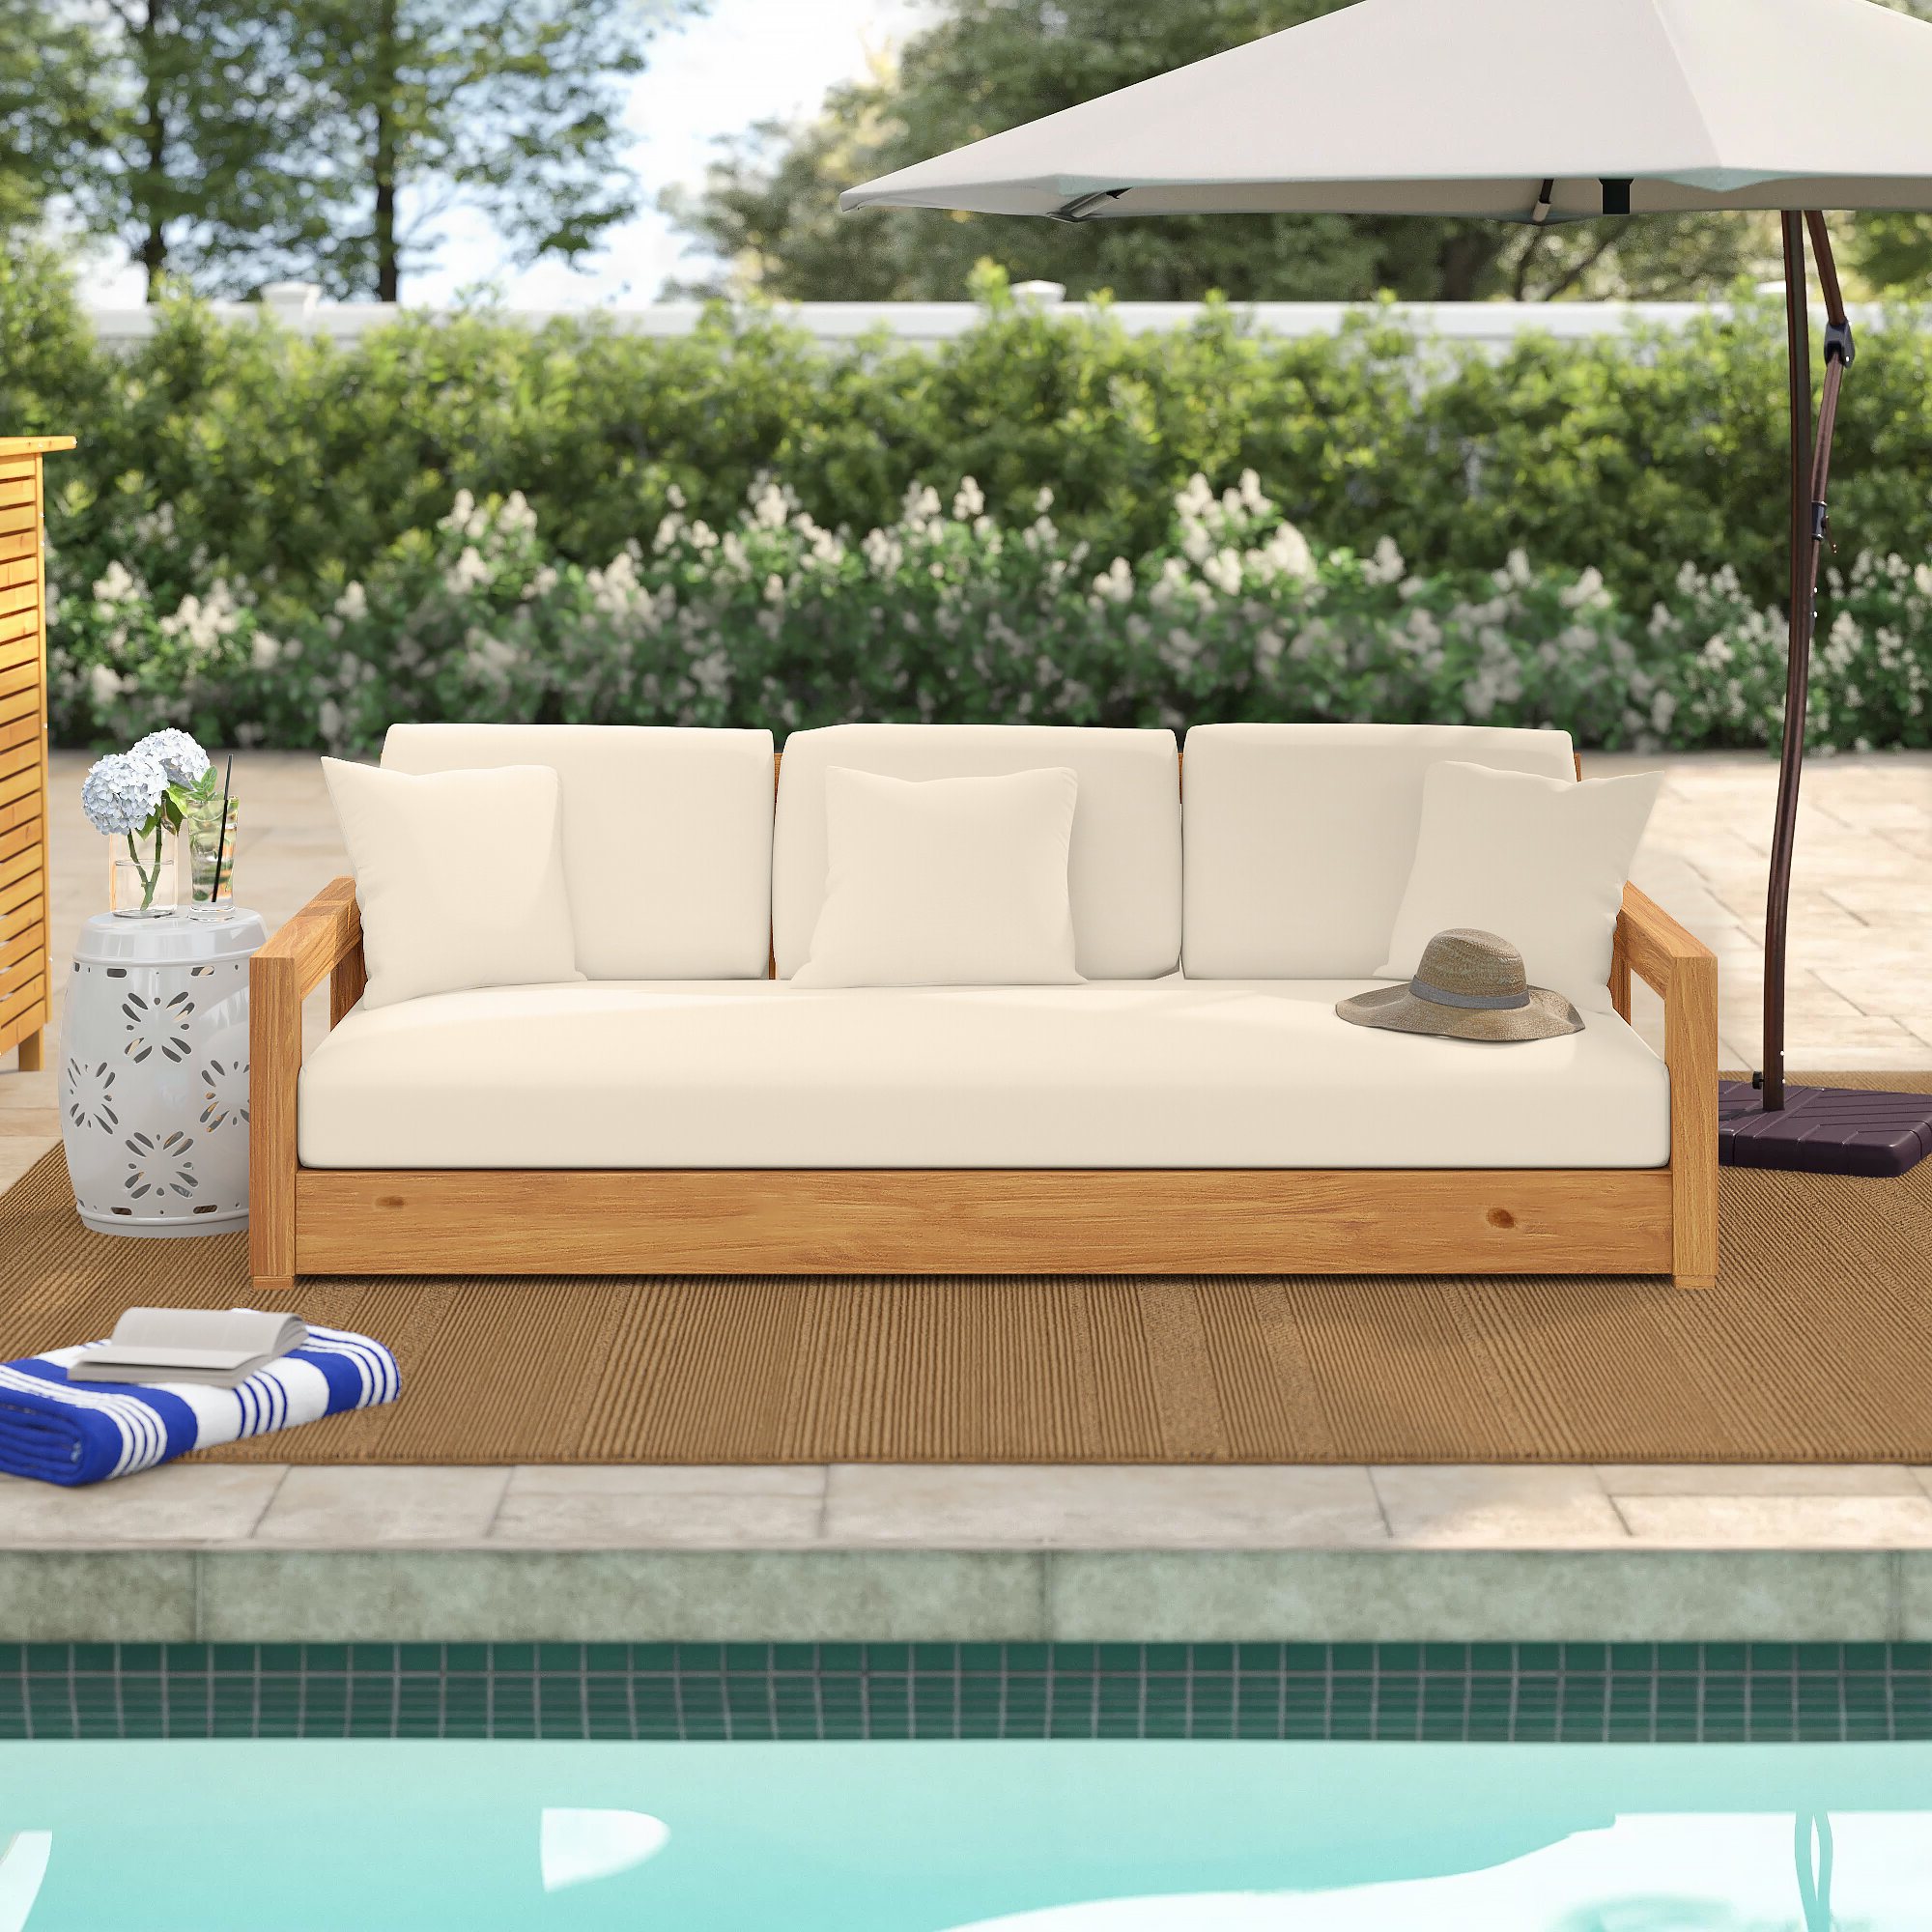 Lakeland Teak Loveseats With Cushions For Widely Used Lakeland Teak Sofa (View 8 of 20)